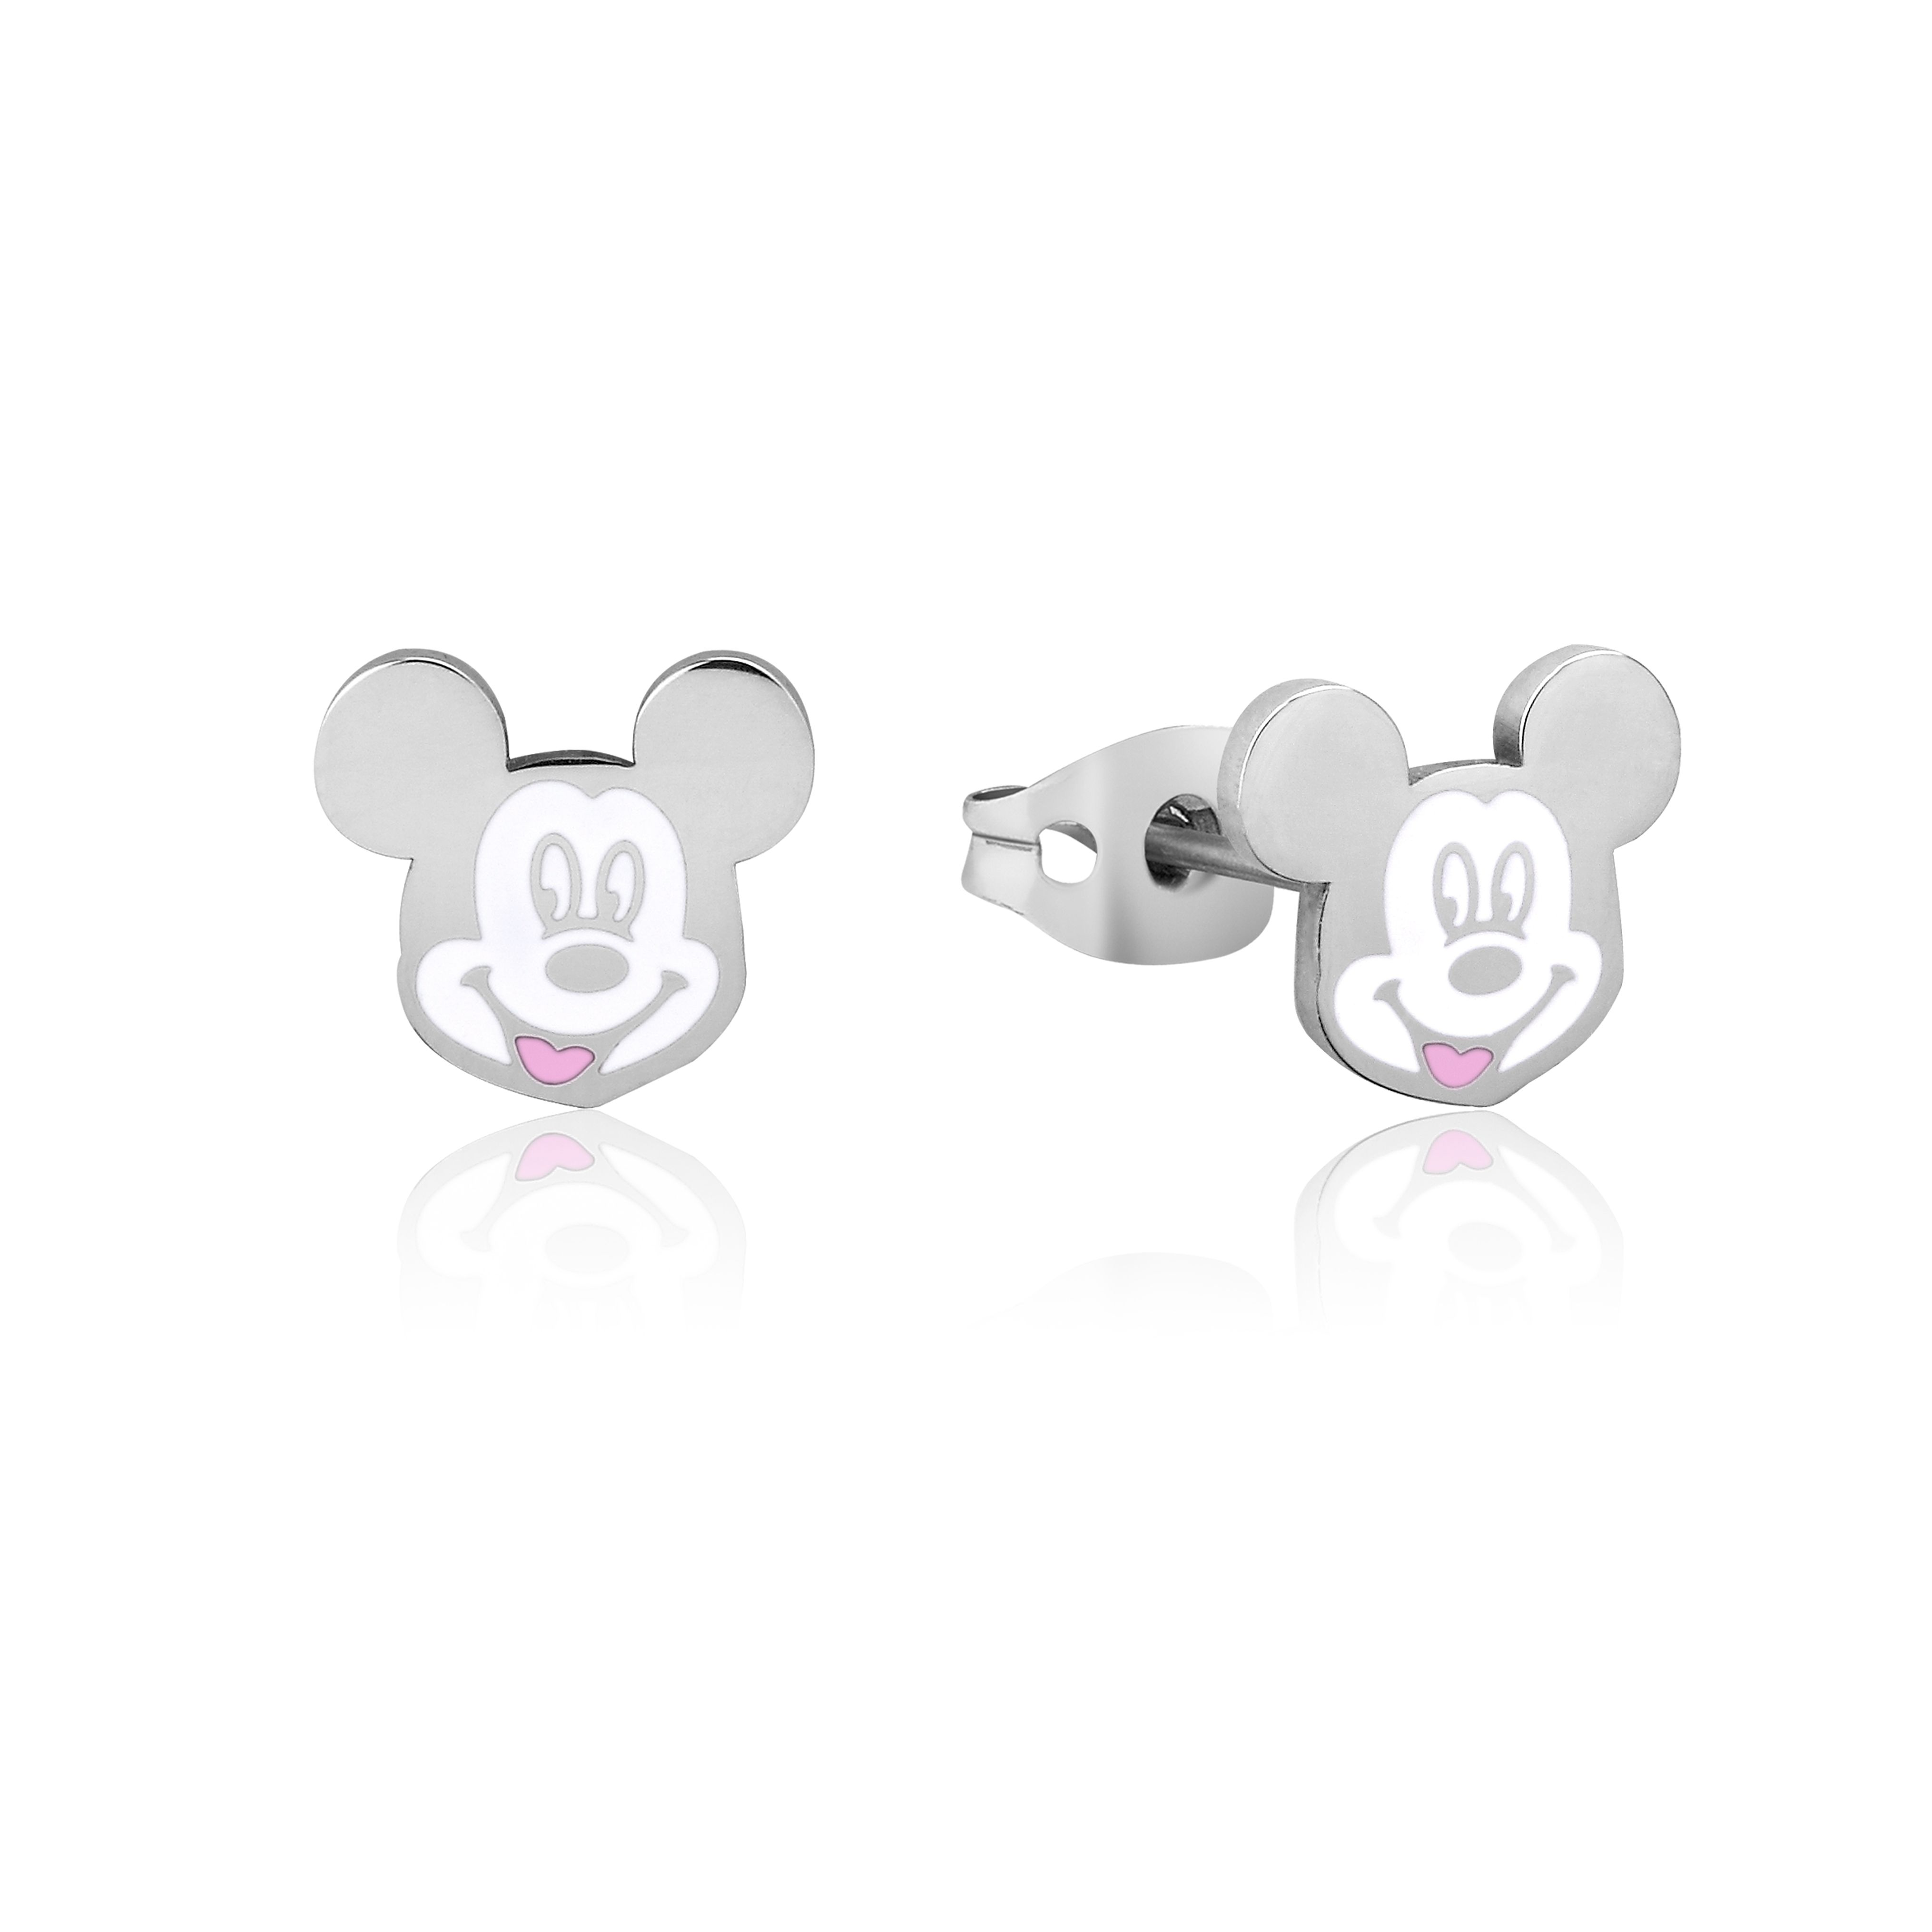 DISNEY Stainless Steel 11mm Animated Mickey Mouse Studs